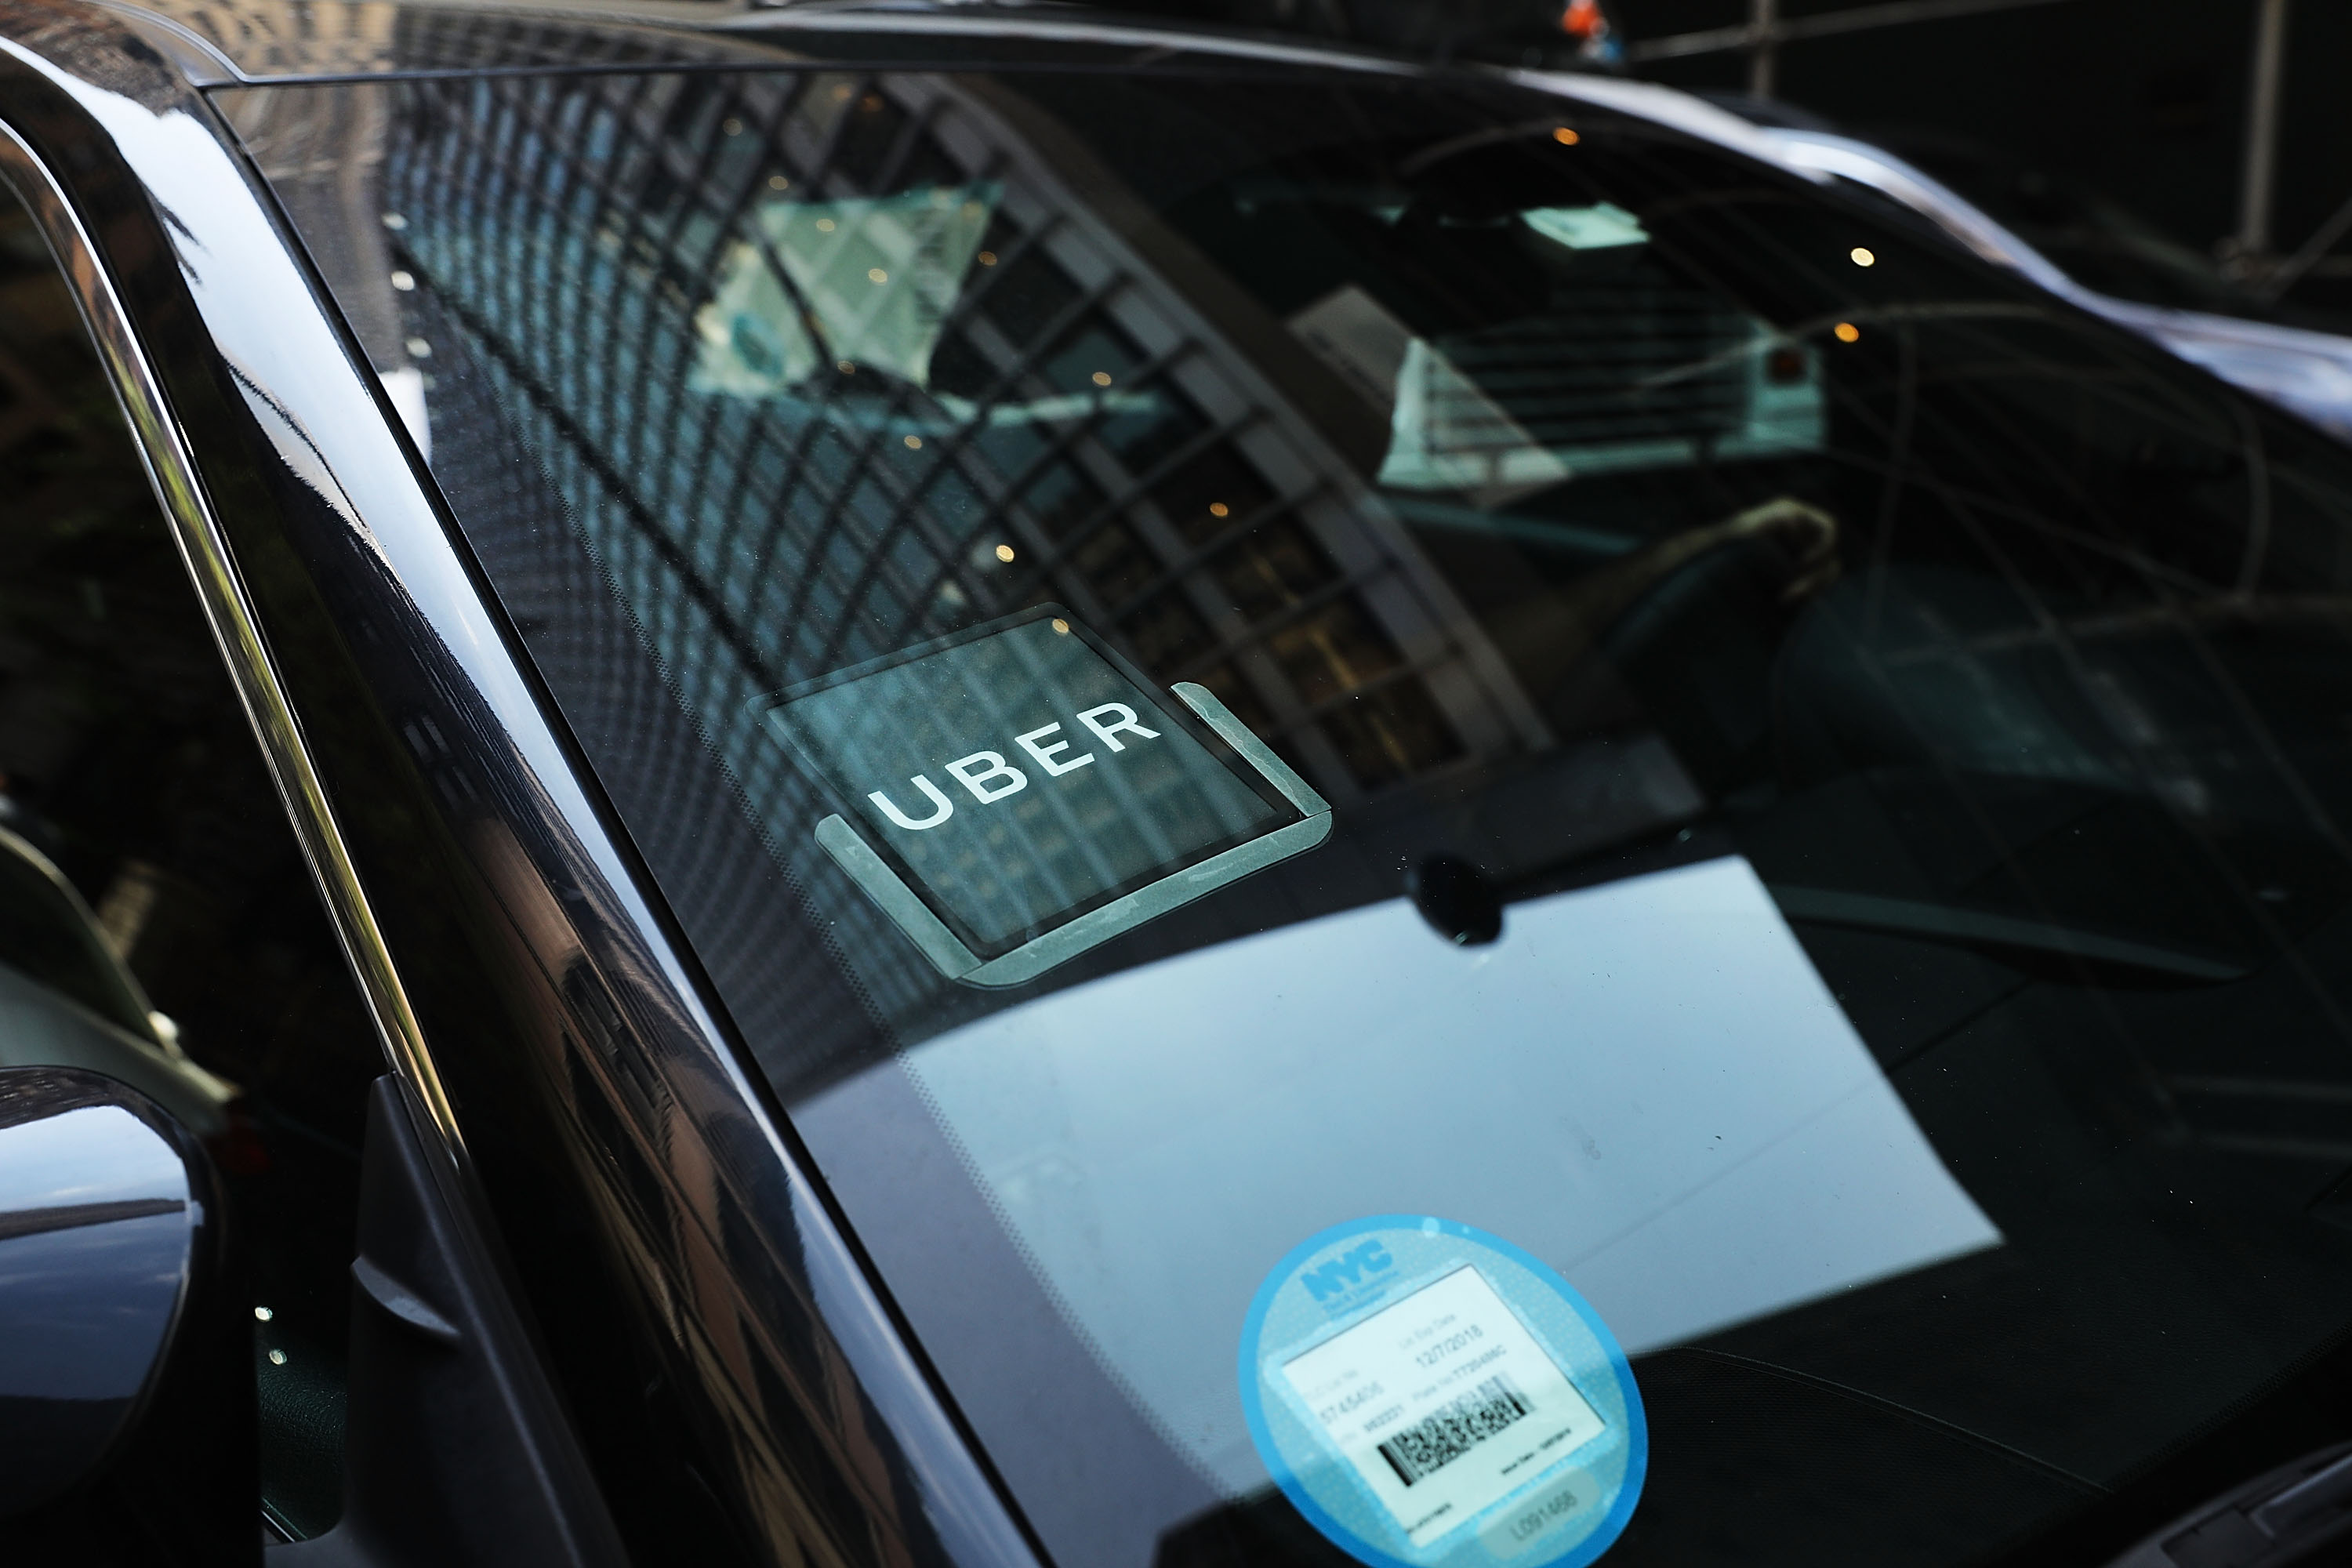 Could Uber's Arbitration Agreements Kill the Company?